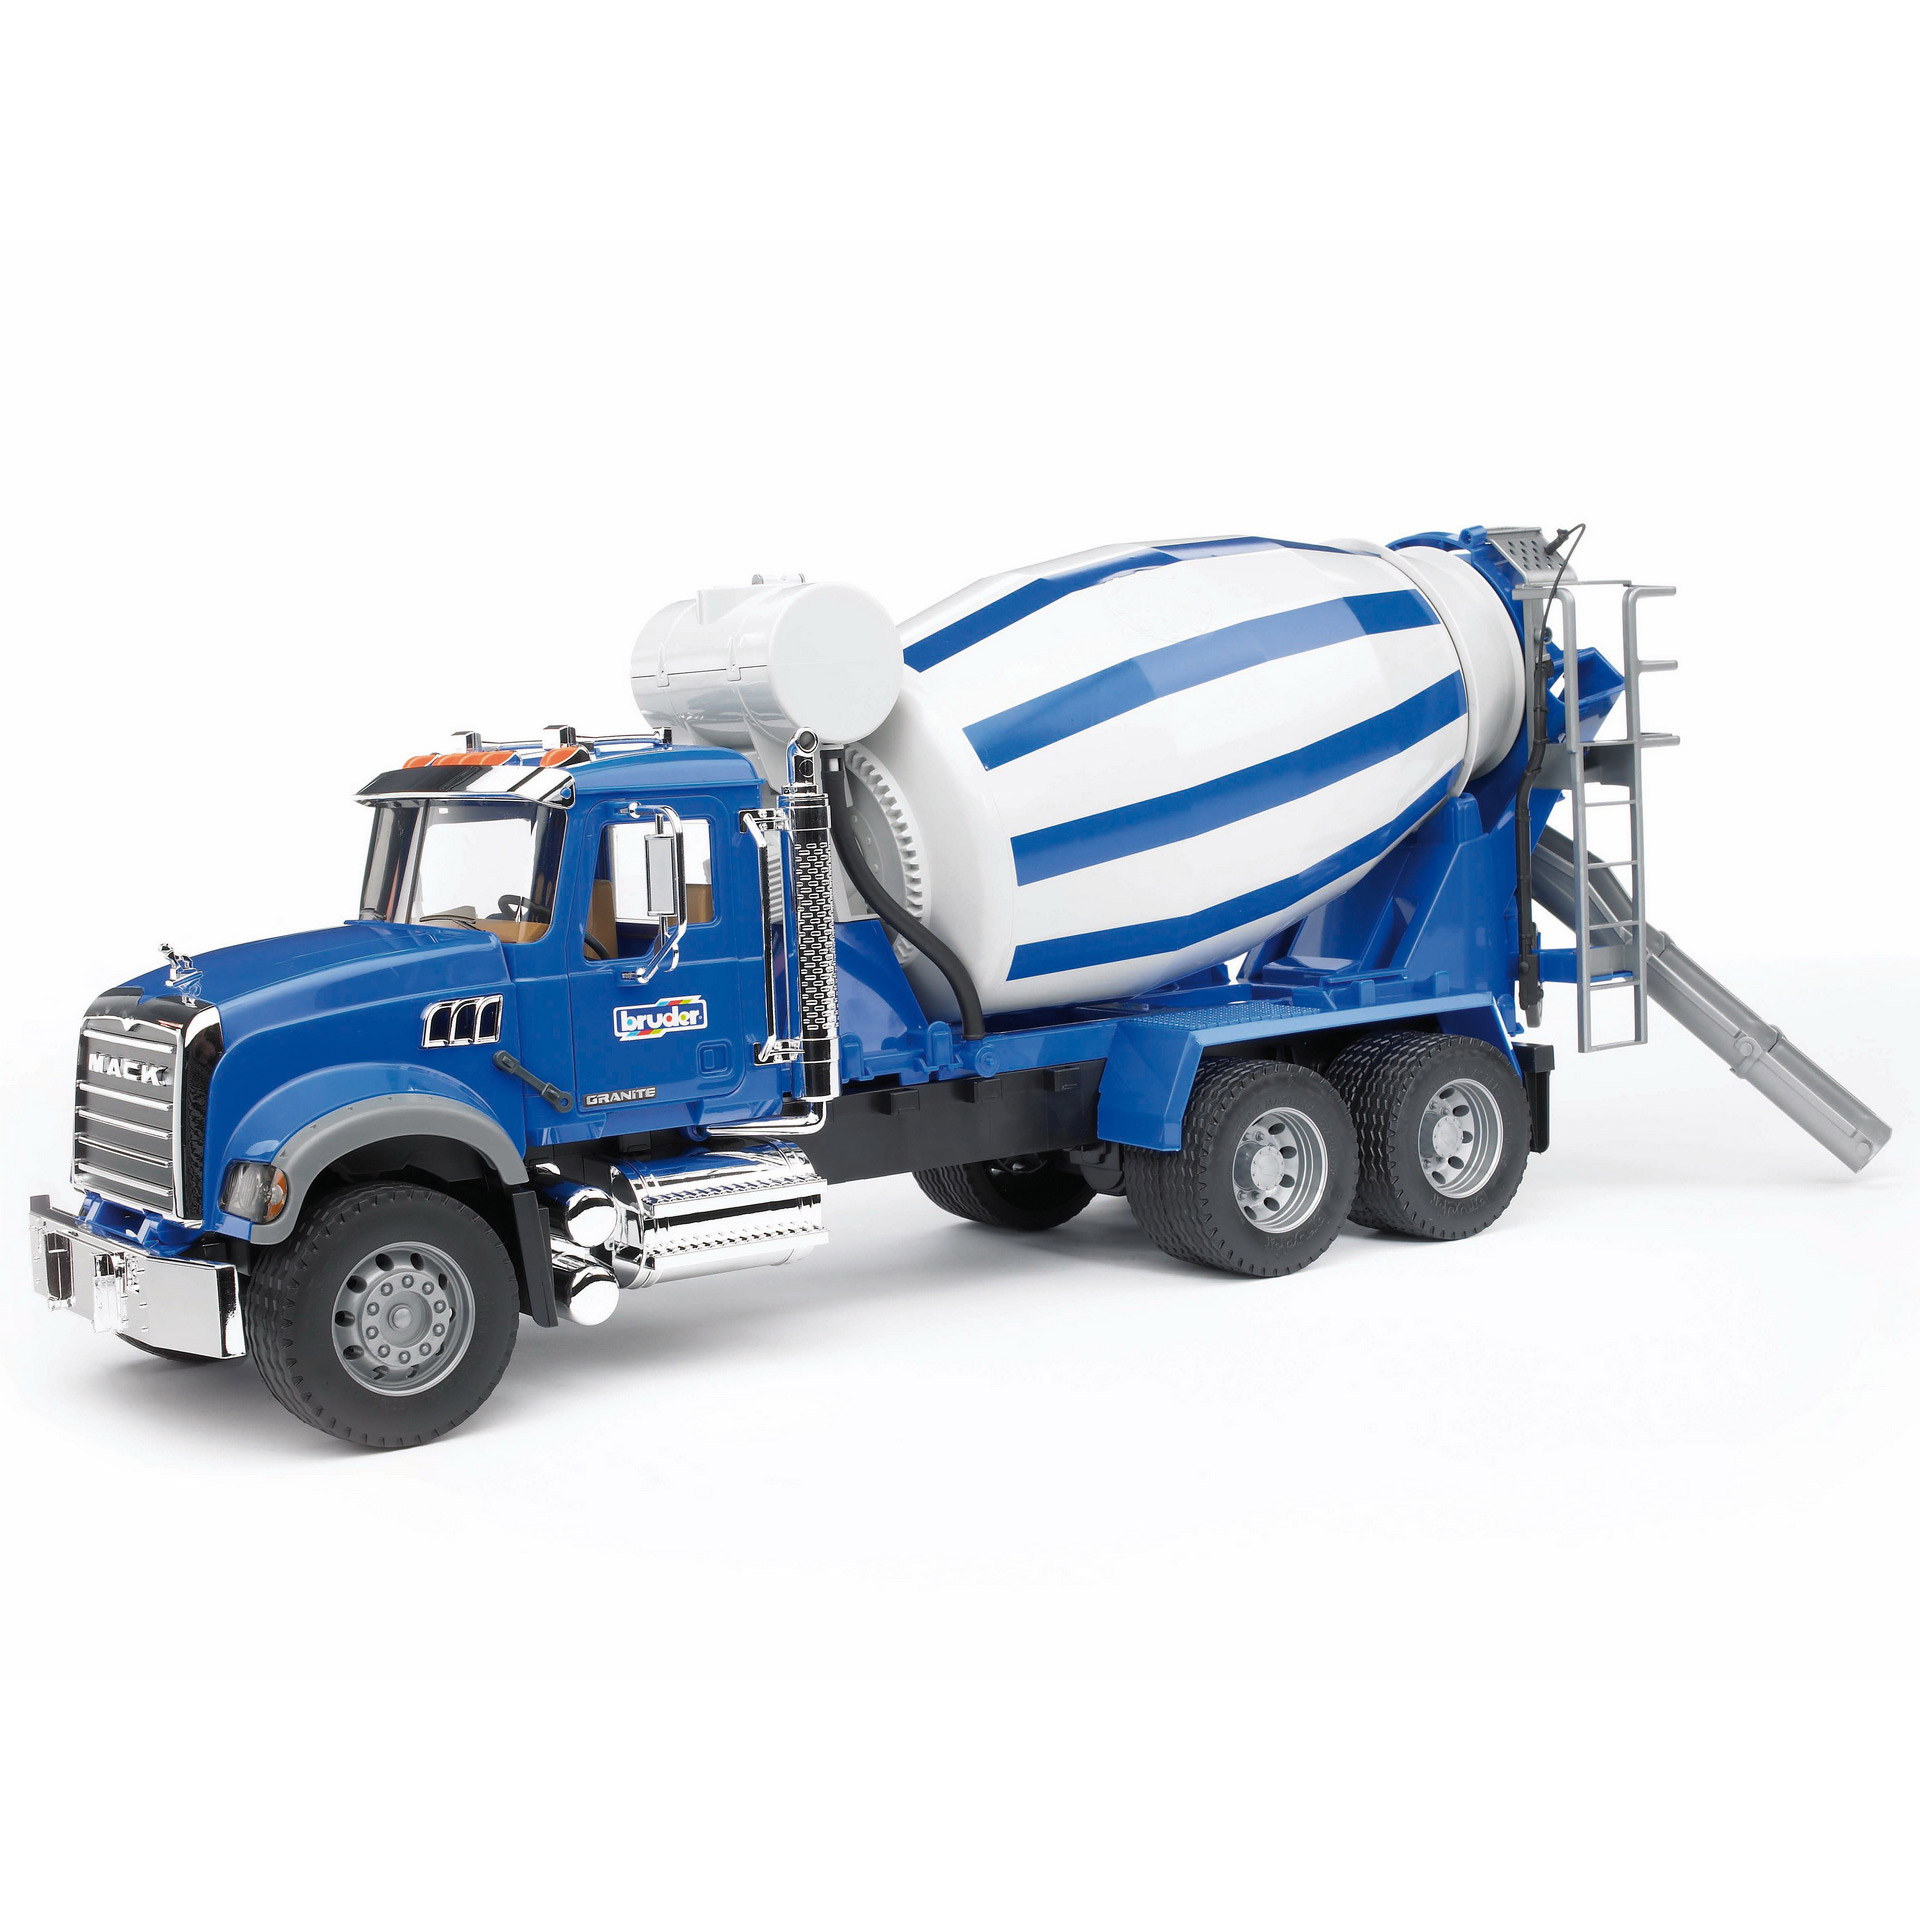 Bruder Toys Construction Vehicle MACK Granite Cement Mixer Truck with Barrel by Bruder Toys